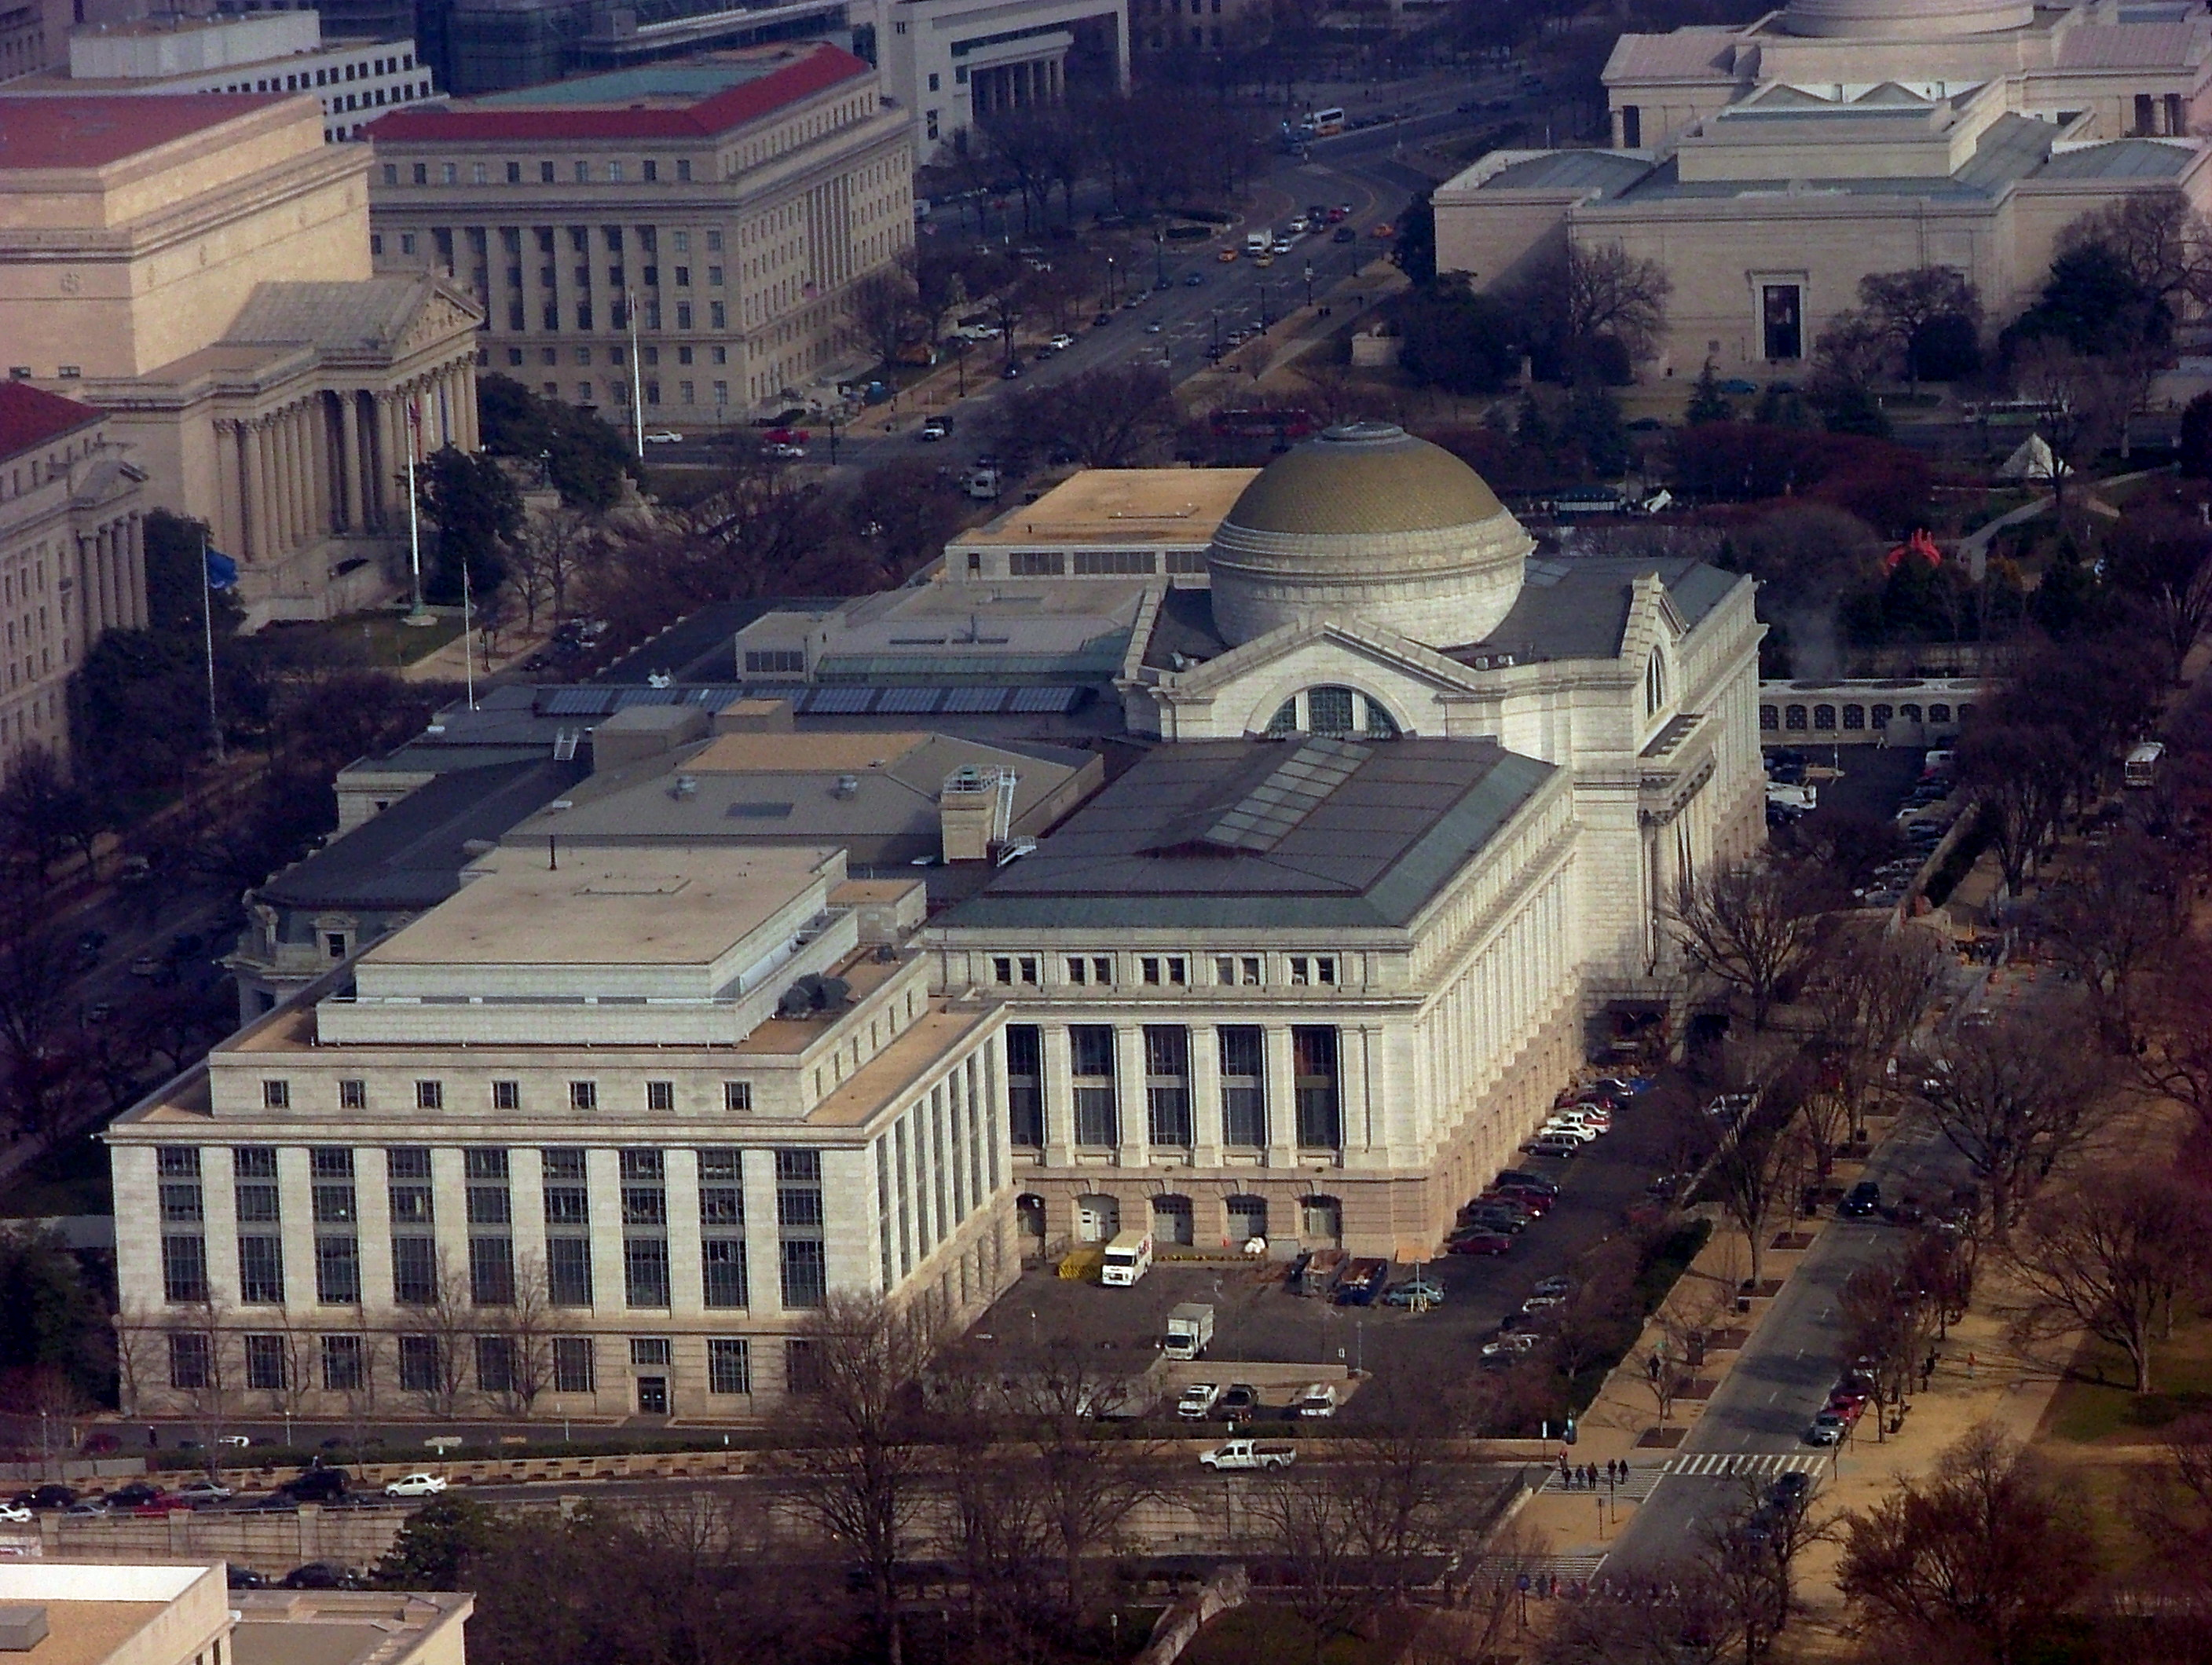 The National Museum of American History is located on Constitution Avenue NW and runs along the National Mall. Through research, in-depth exhibits, extensive collections and public outreach, the museum presents America's history in all of its complexity.